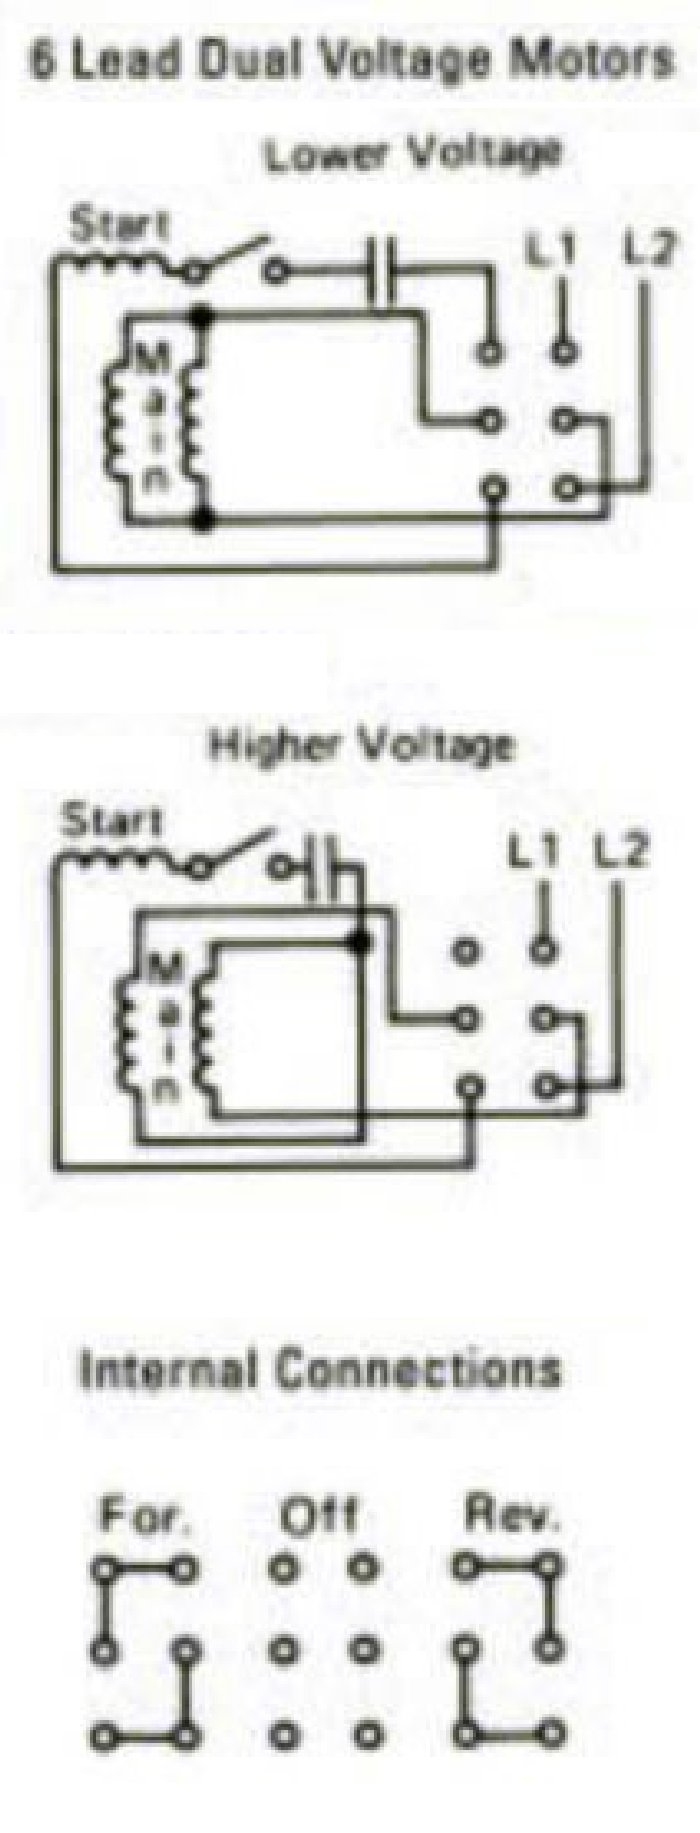 6 lead drum sw wiring?resize=665%2C1741 salzer boat lift switch wiring diagram the best wiring diagram 2017 salzer boat lift switch wiring diagram at alyssarenee.co